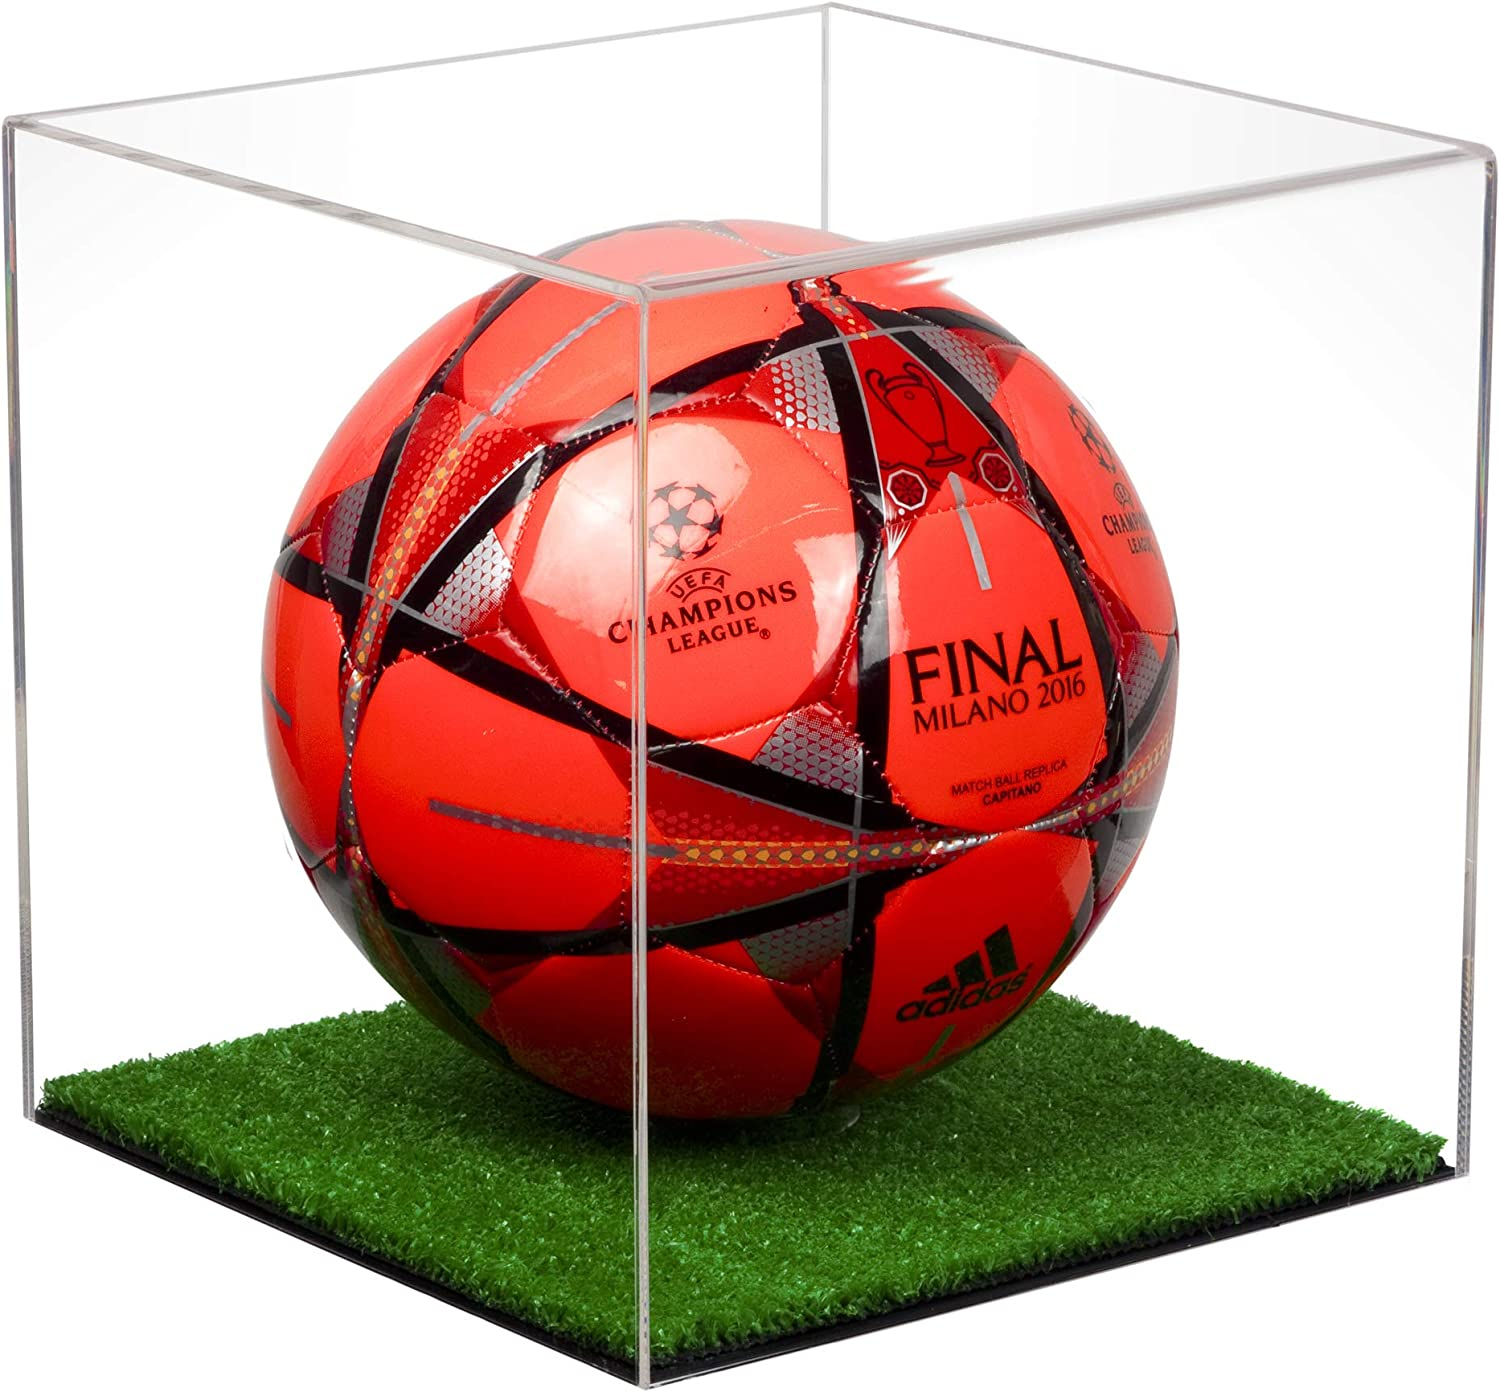 Deluxe Acrylic Soccer Ball Display Case